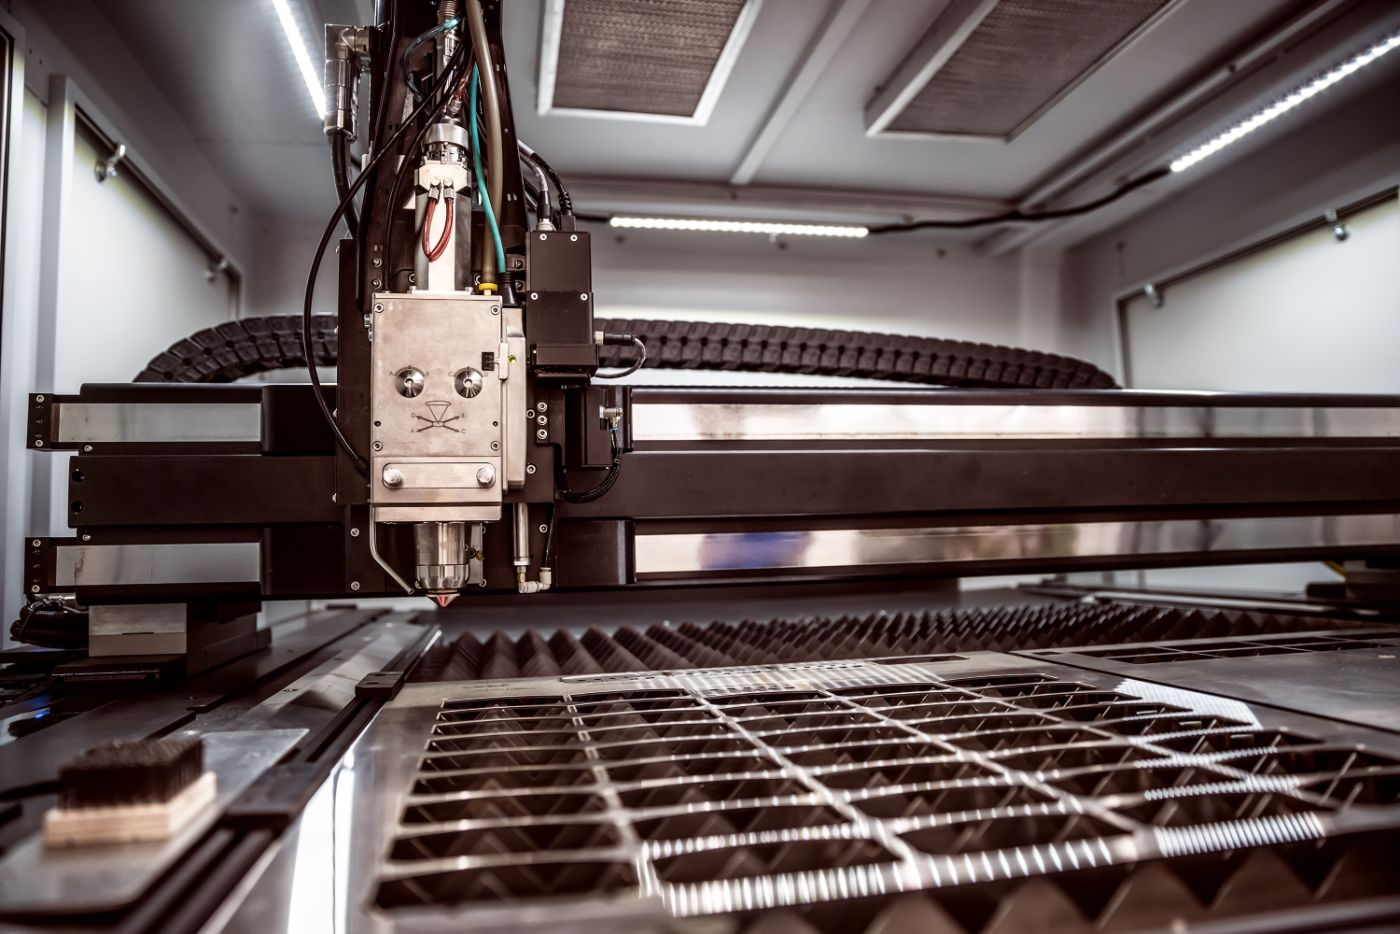 cnc-laser-cutting-of-metal-modern-industrial-PYQPRRC